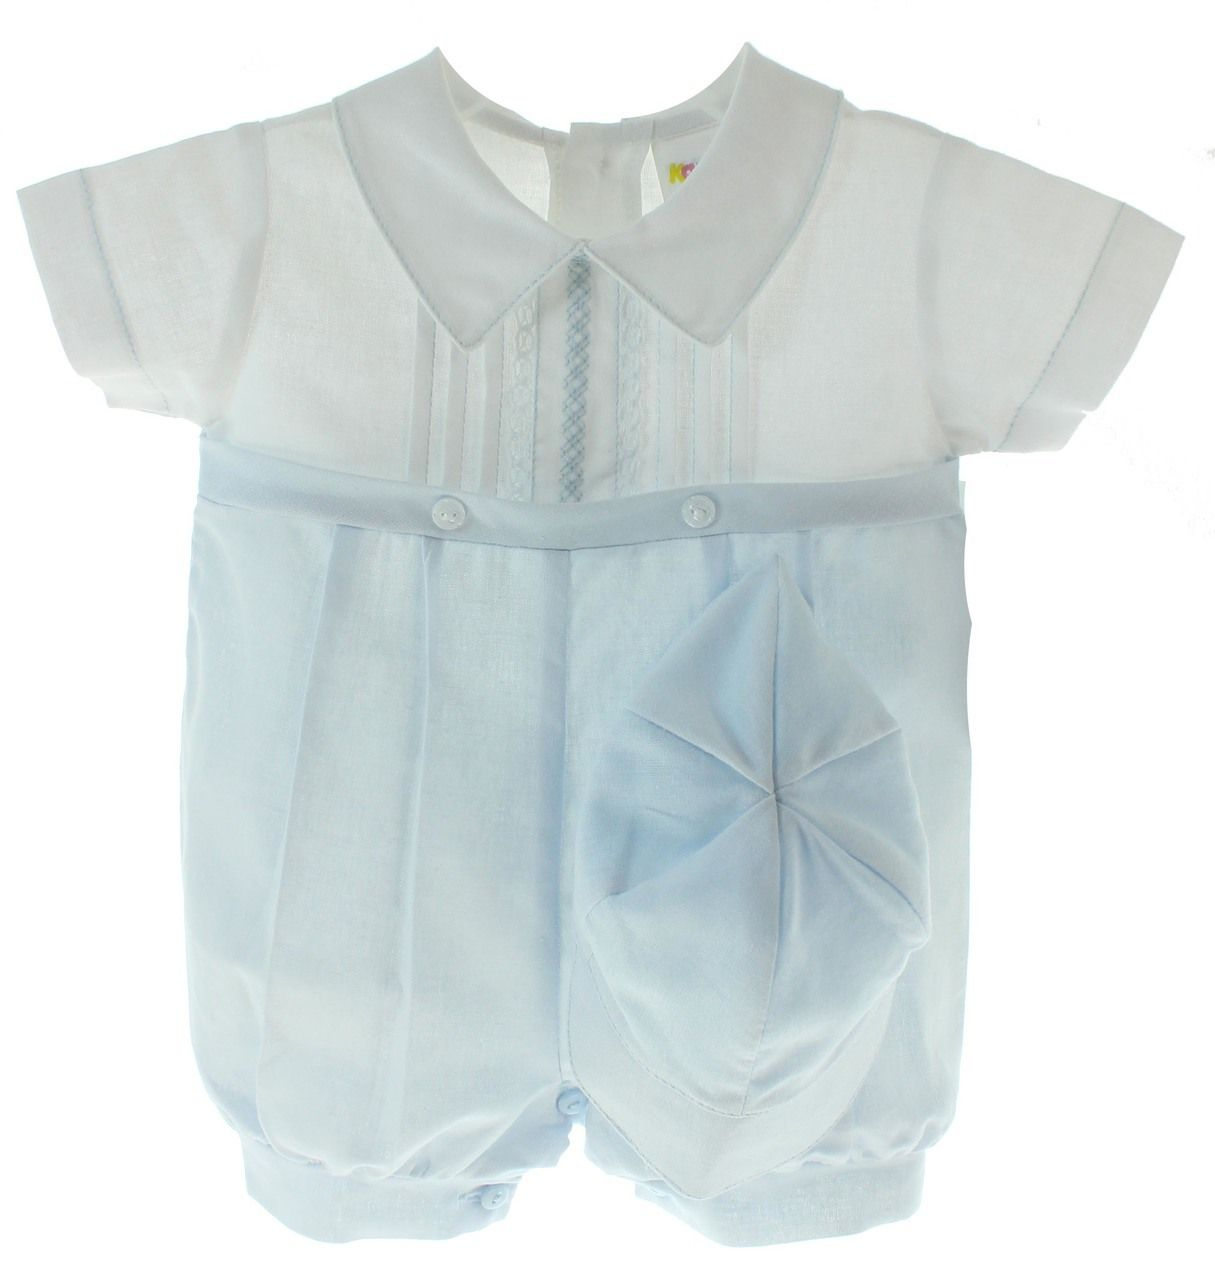 71de46606554 Baby Boys Linen Christening Outfit - Baby Boys Blue White Dressy Linen  Romper with Hat